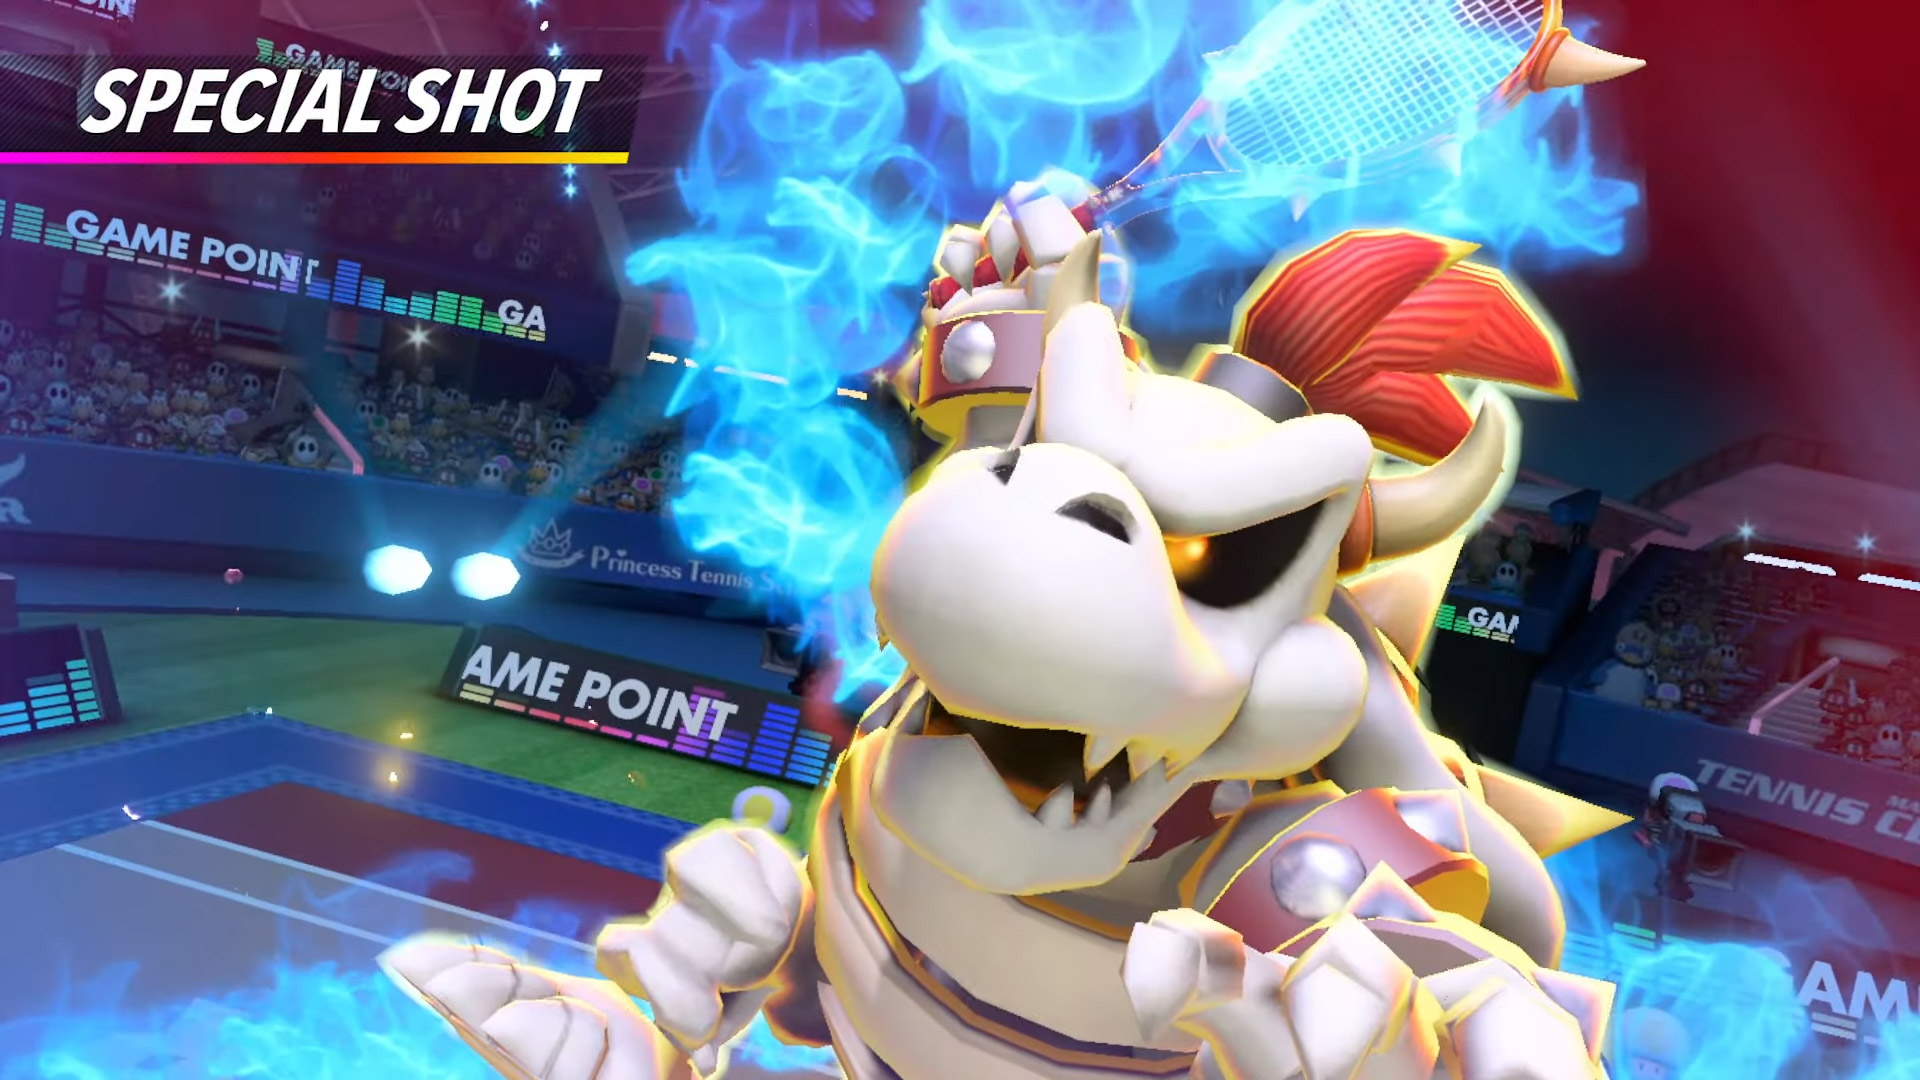 Dry Bowser reminds me that I haven't played Mario Tennis Aces in ages screenshot